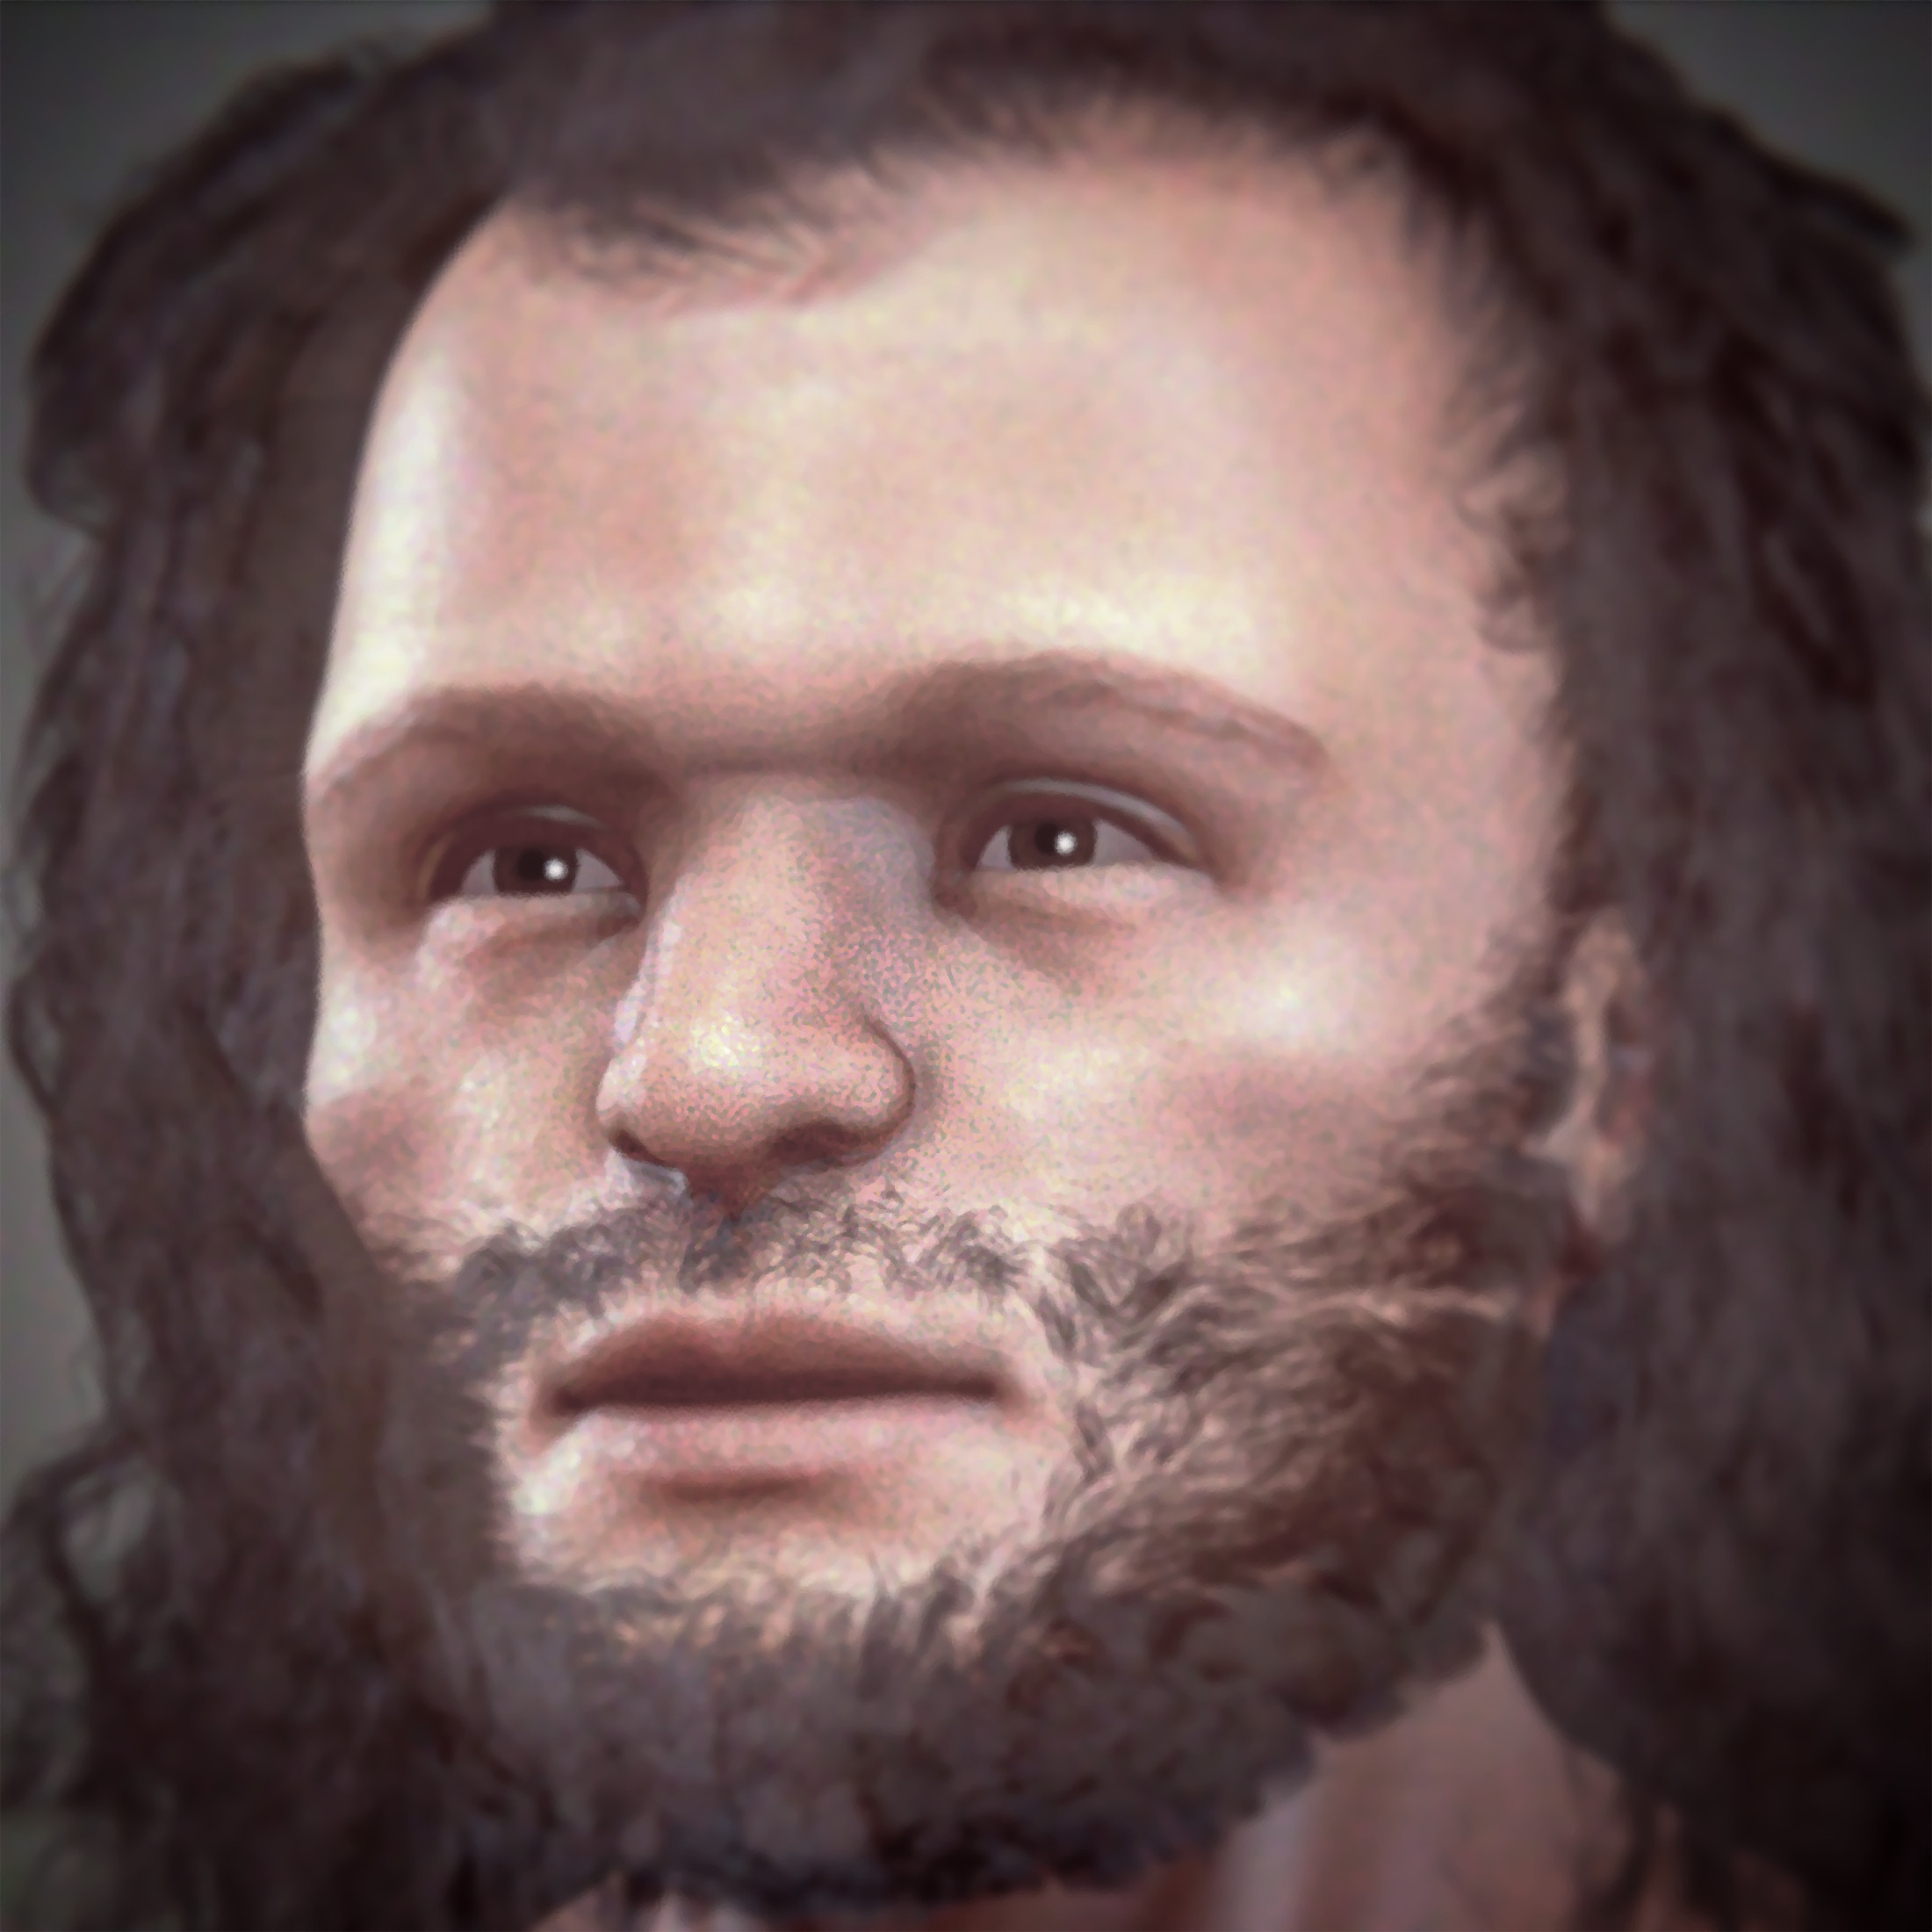 http://upload.wikimedia.org/wikipedia/commons/1/1d/Cro-Magnon_man_rendered.jpg